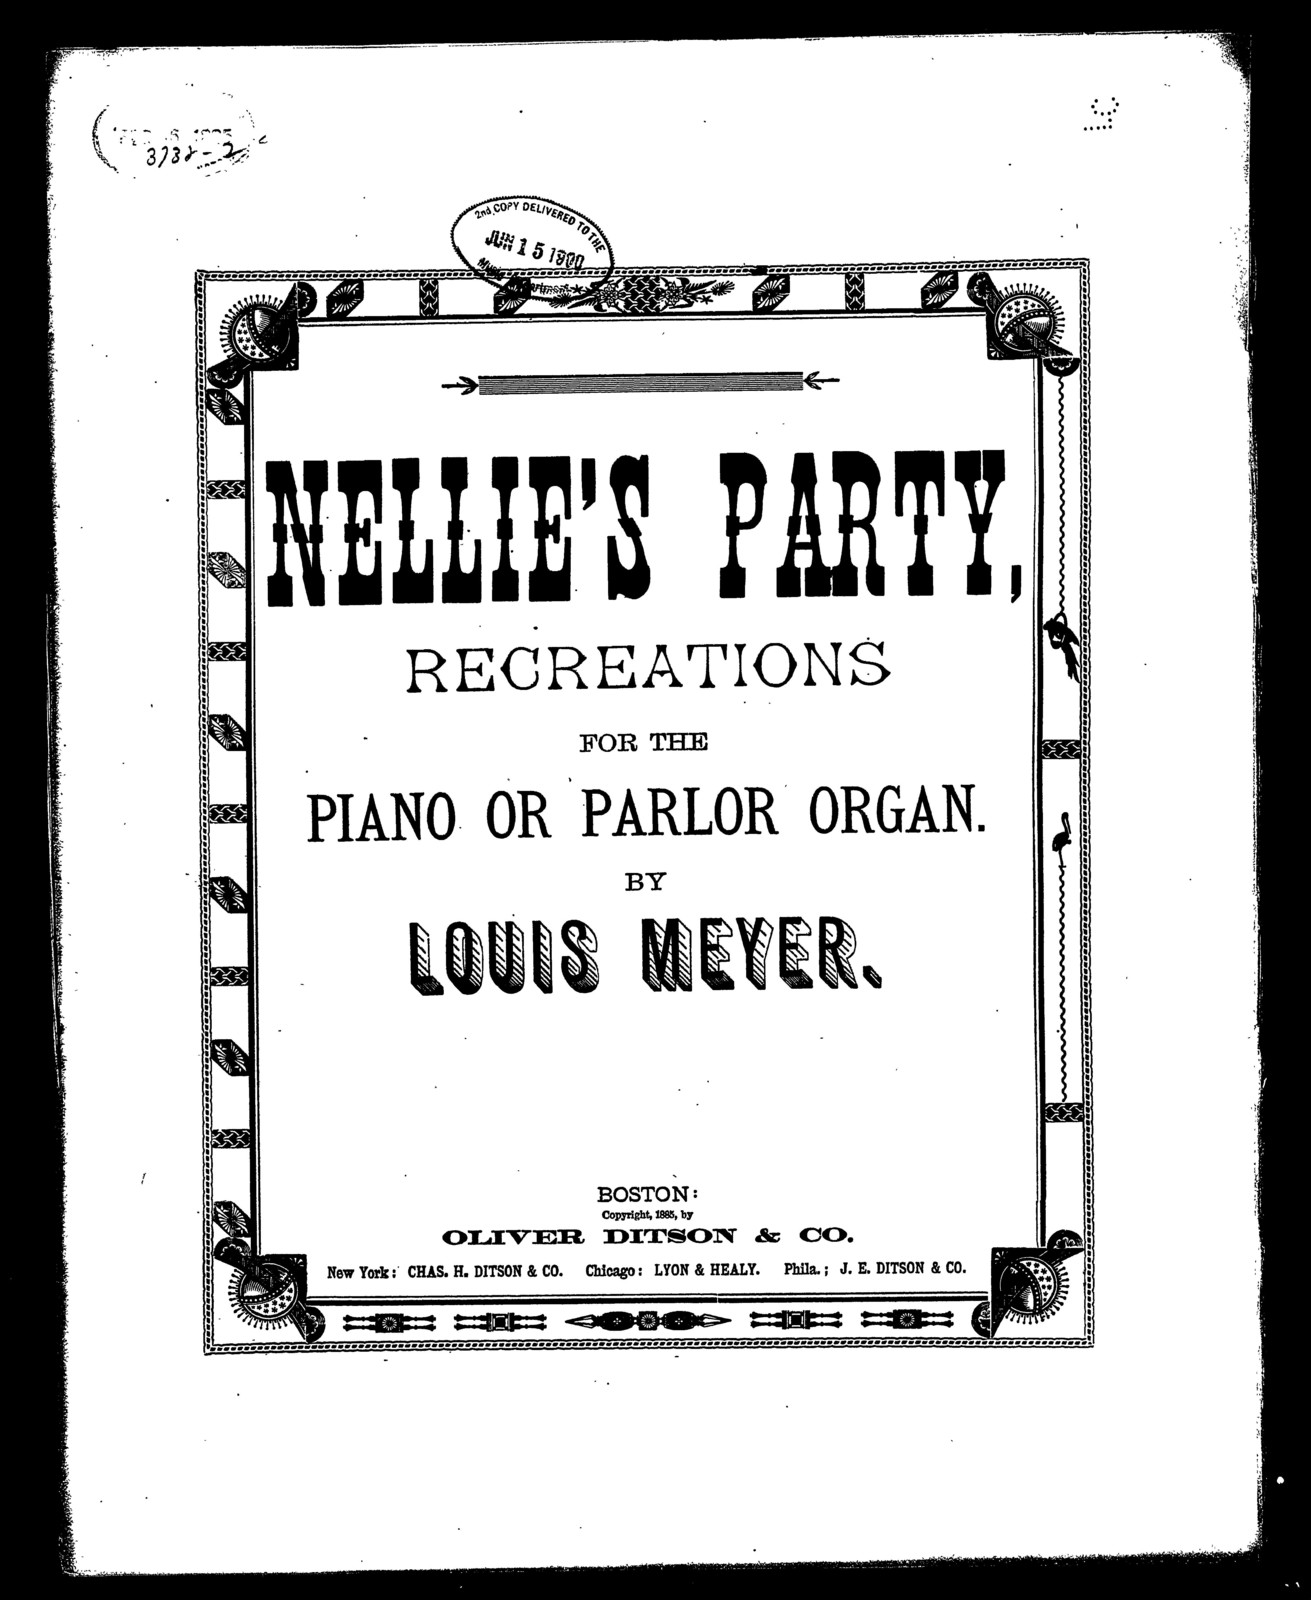 Nellie's party; Recreations